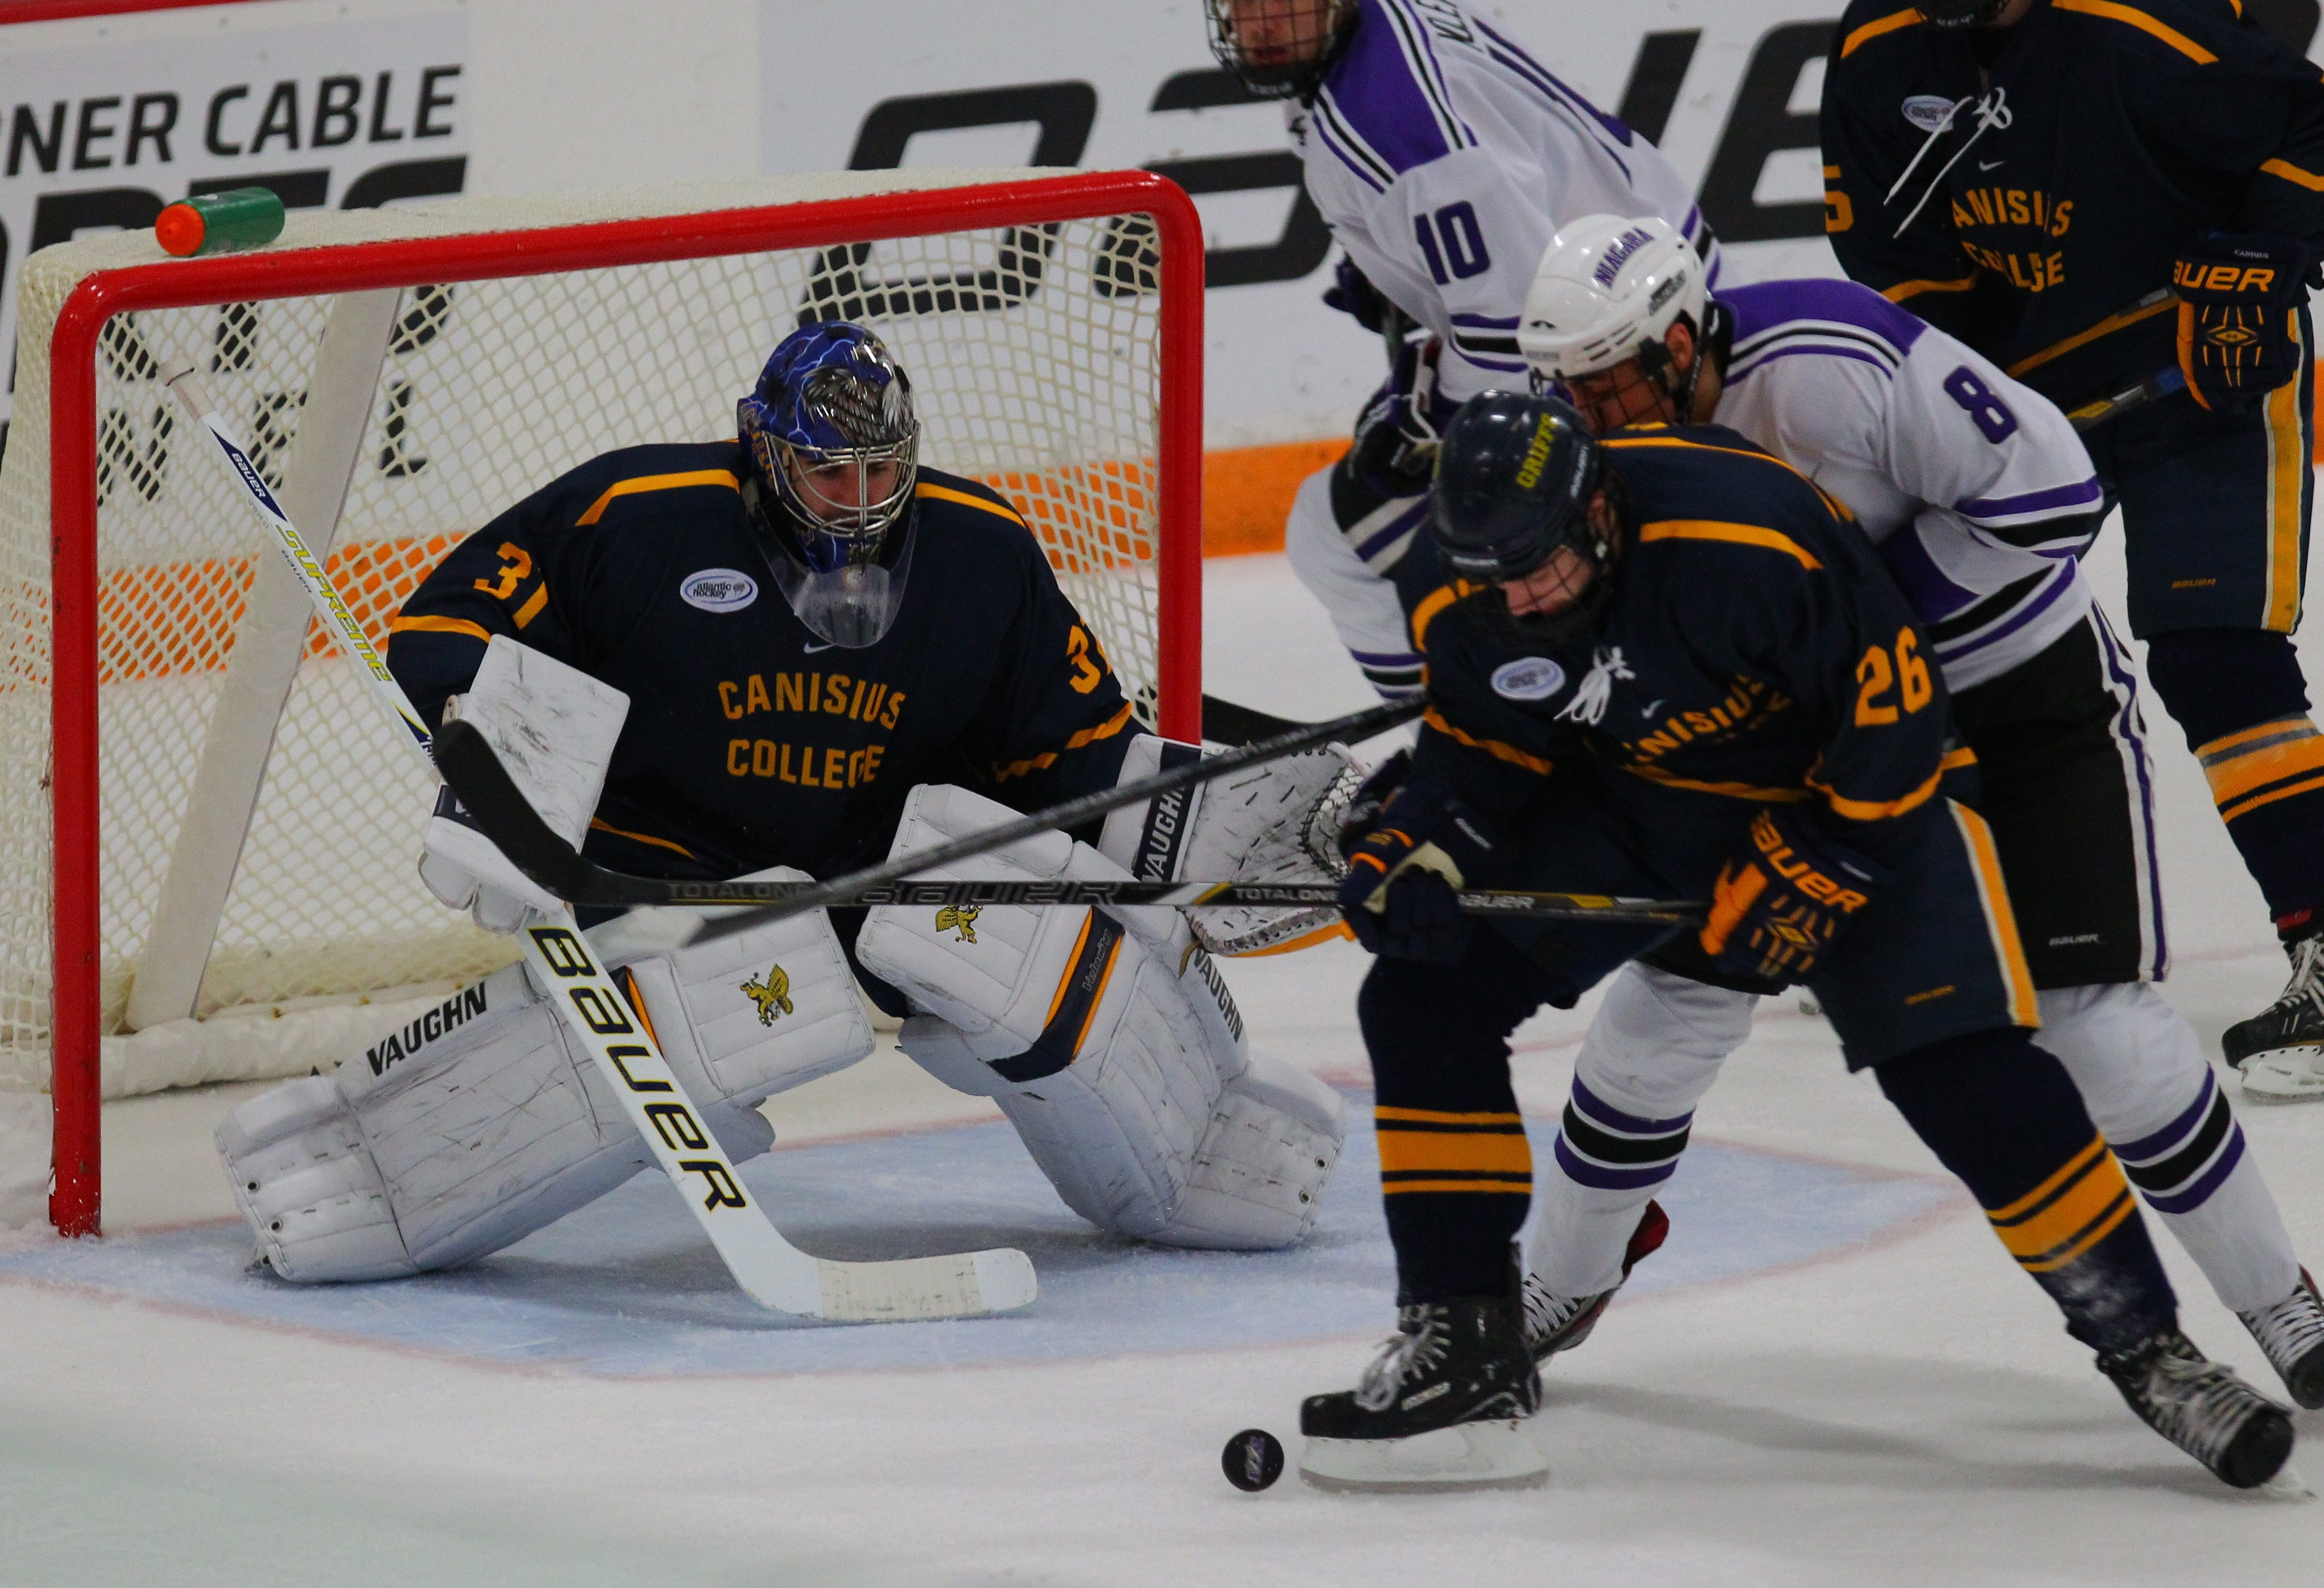 college hockey players make fast transition to pros the buffalo news canisius goalie tony capobianco is thrilled he has an opportunity to play professionally now elmira of the echl as he has gone from the low of his